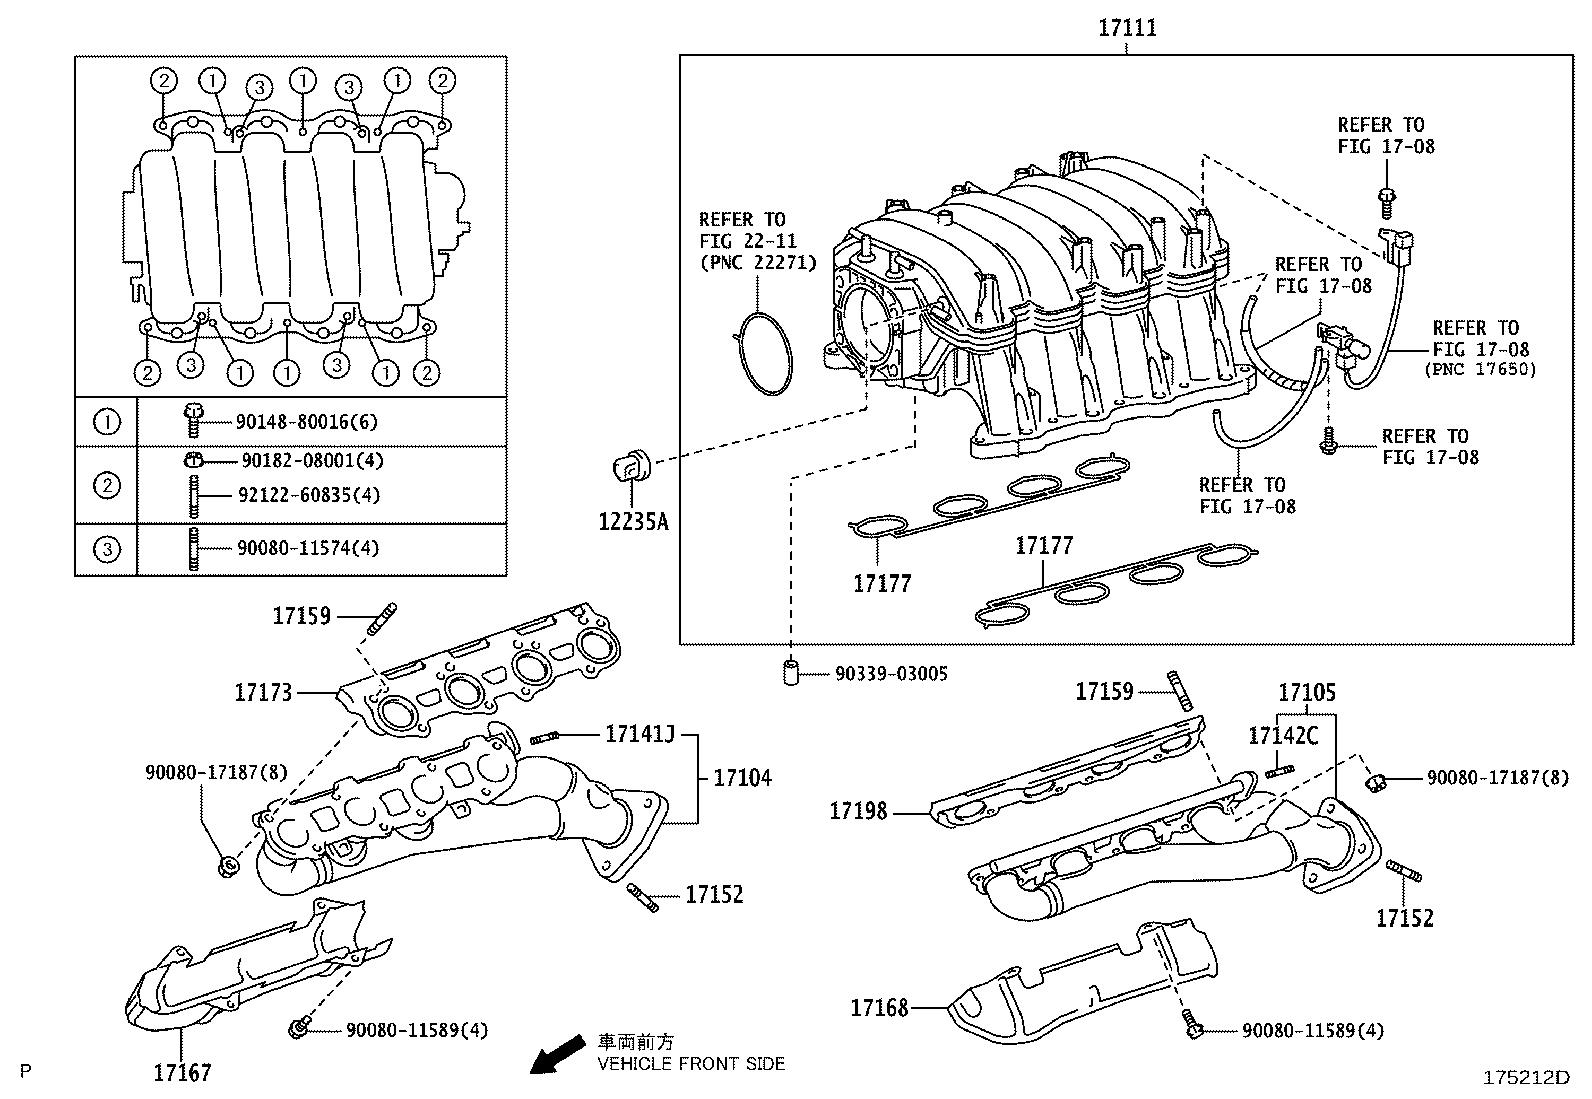 Toyota Sequoia Gasket, intake manifold, no. 2. Exhaust